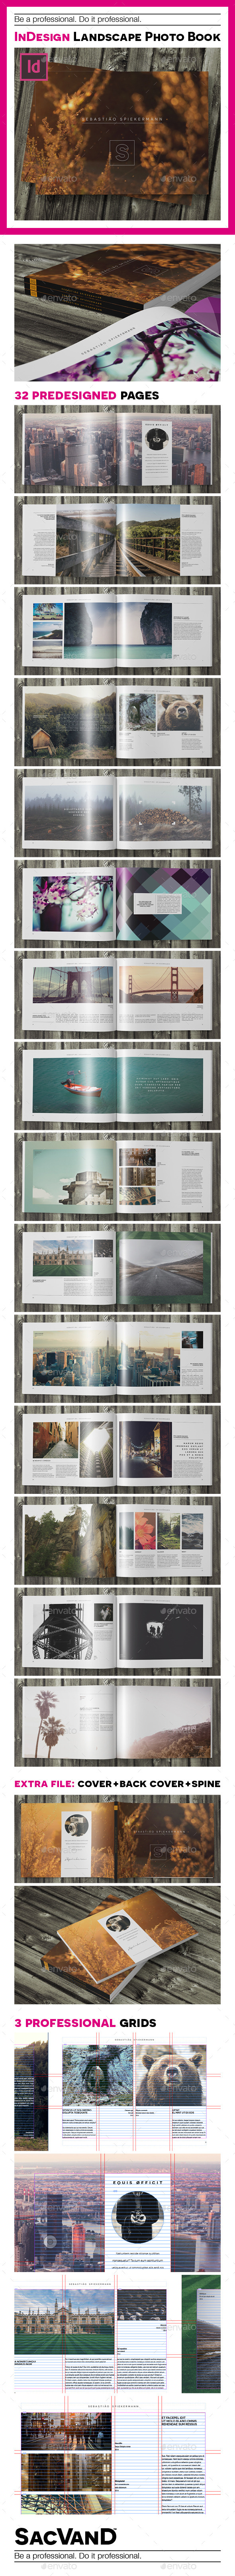 Indesign landscape photo book template - Photo Albums Print Templates